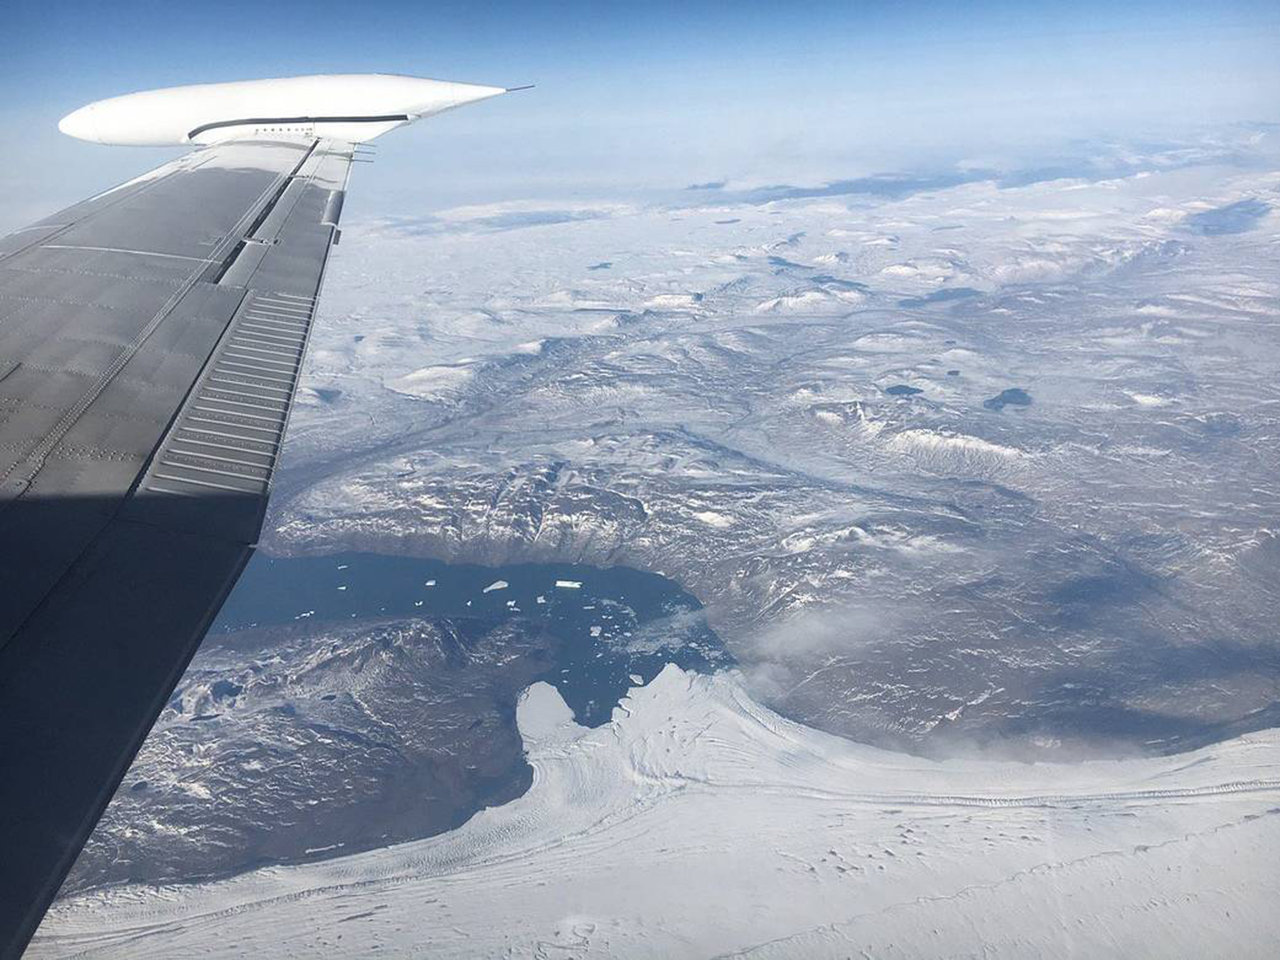 This photograph was taken on Aug. 29, 2017, from 28,000 feet, looking north while surveying Nioghalvfjerdsbrae (79 N) Glacier in northeast Greenland.